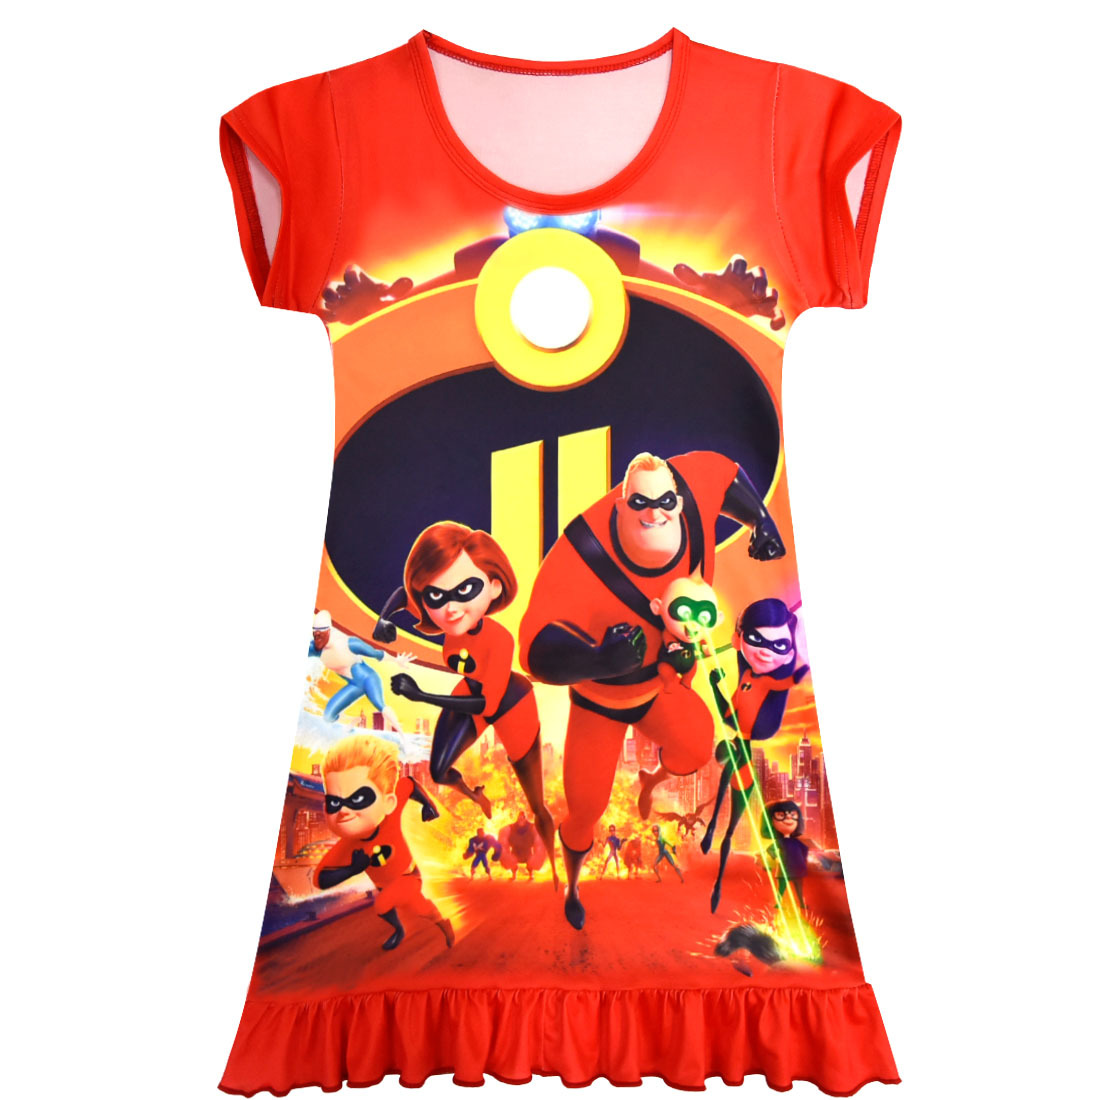 Girls' Clothing Dresses New Summer Kids Superman Baby Girl The Incredibles 2 Dress Vestido Dress Moana Costume For Girls Clothes Children Party Dresses